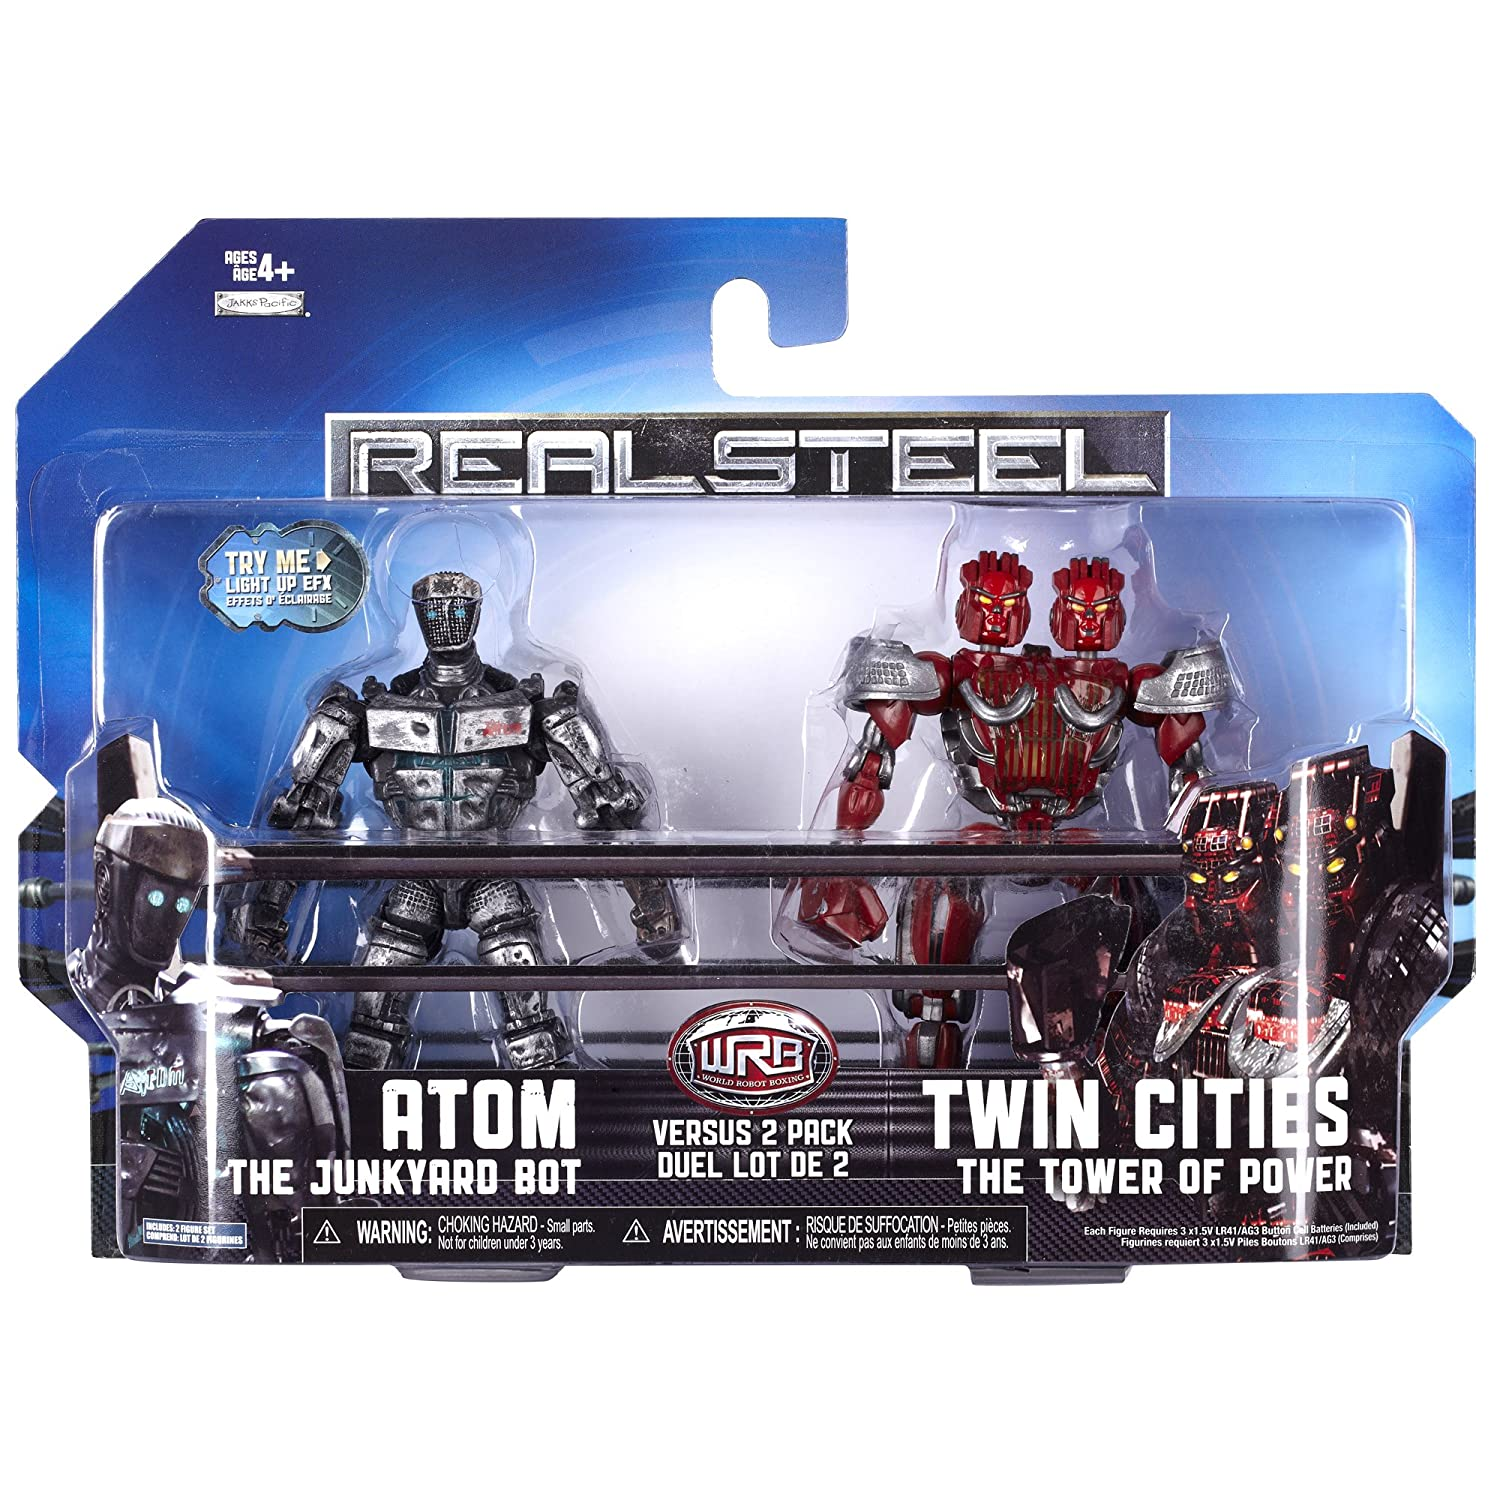 Atom vs Twin Cities Jakks 36136 Real Steel Versus 2 Packs Assortment 1